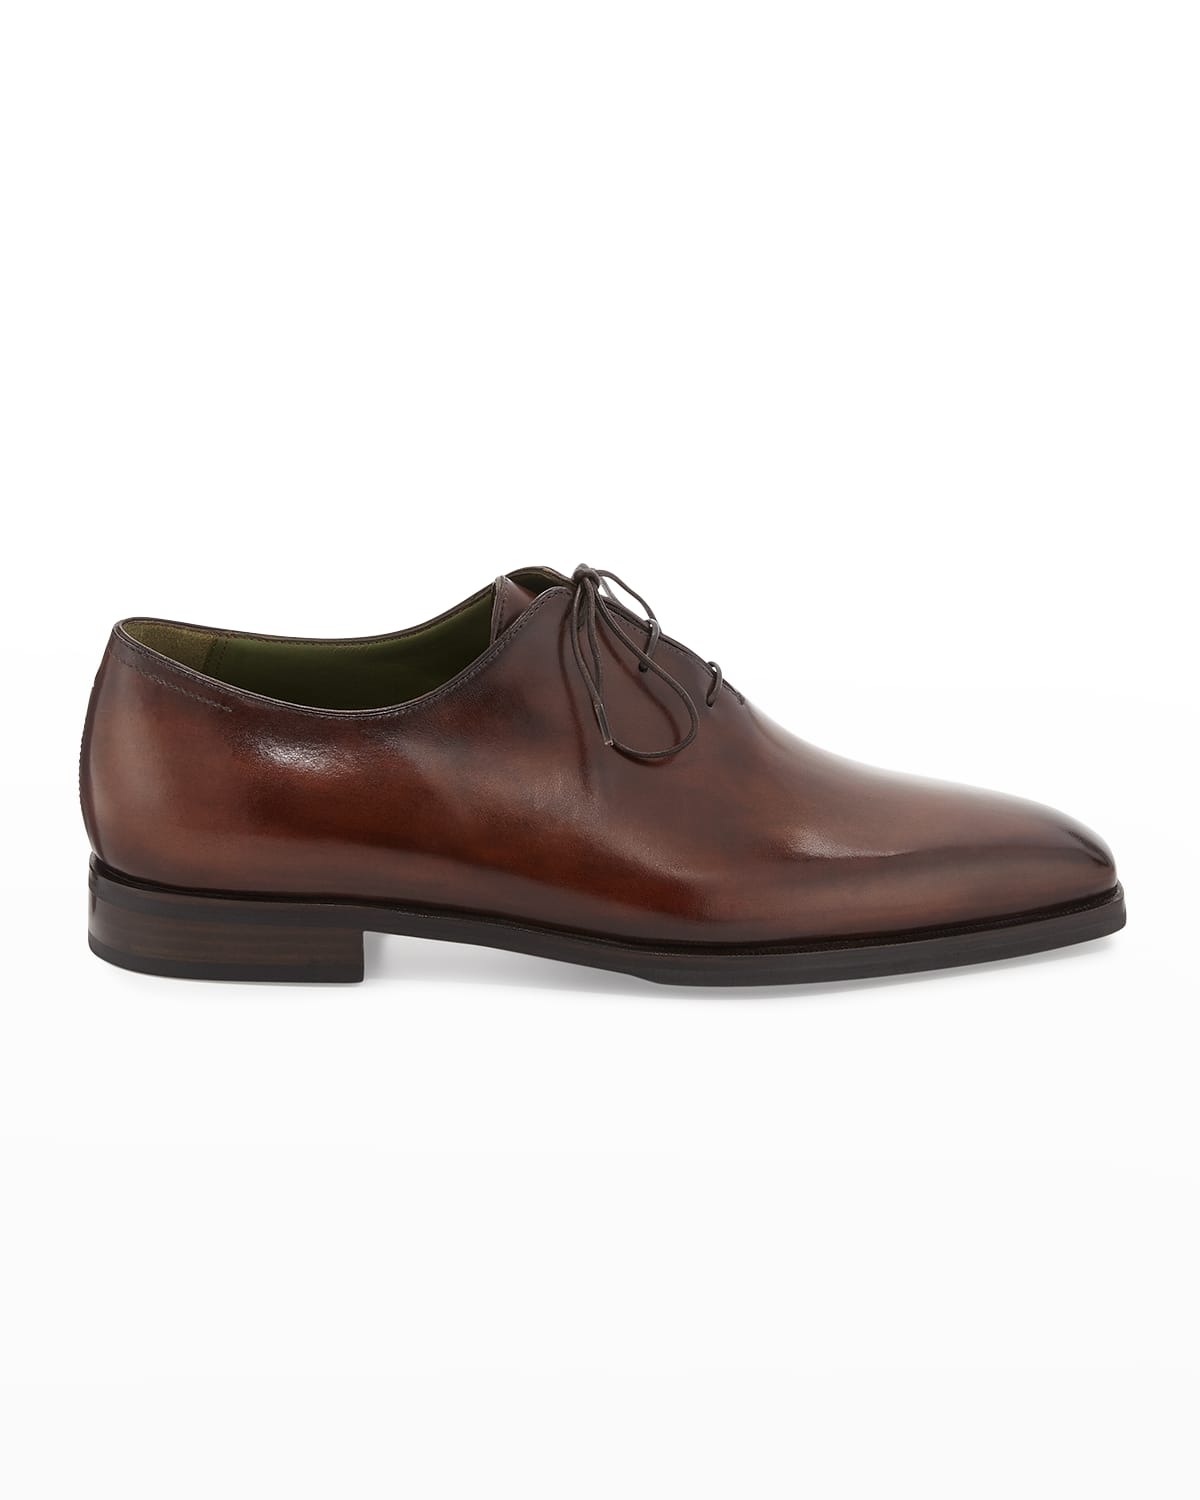 Alessandro Demesure Leather Oxfords with Leather Sole